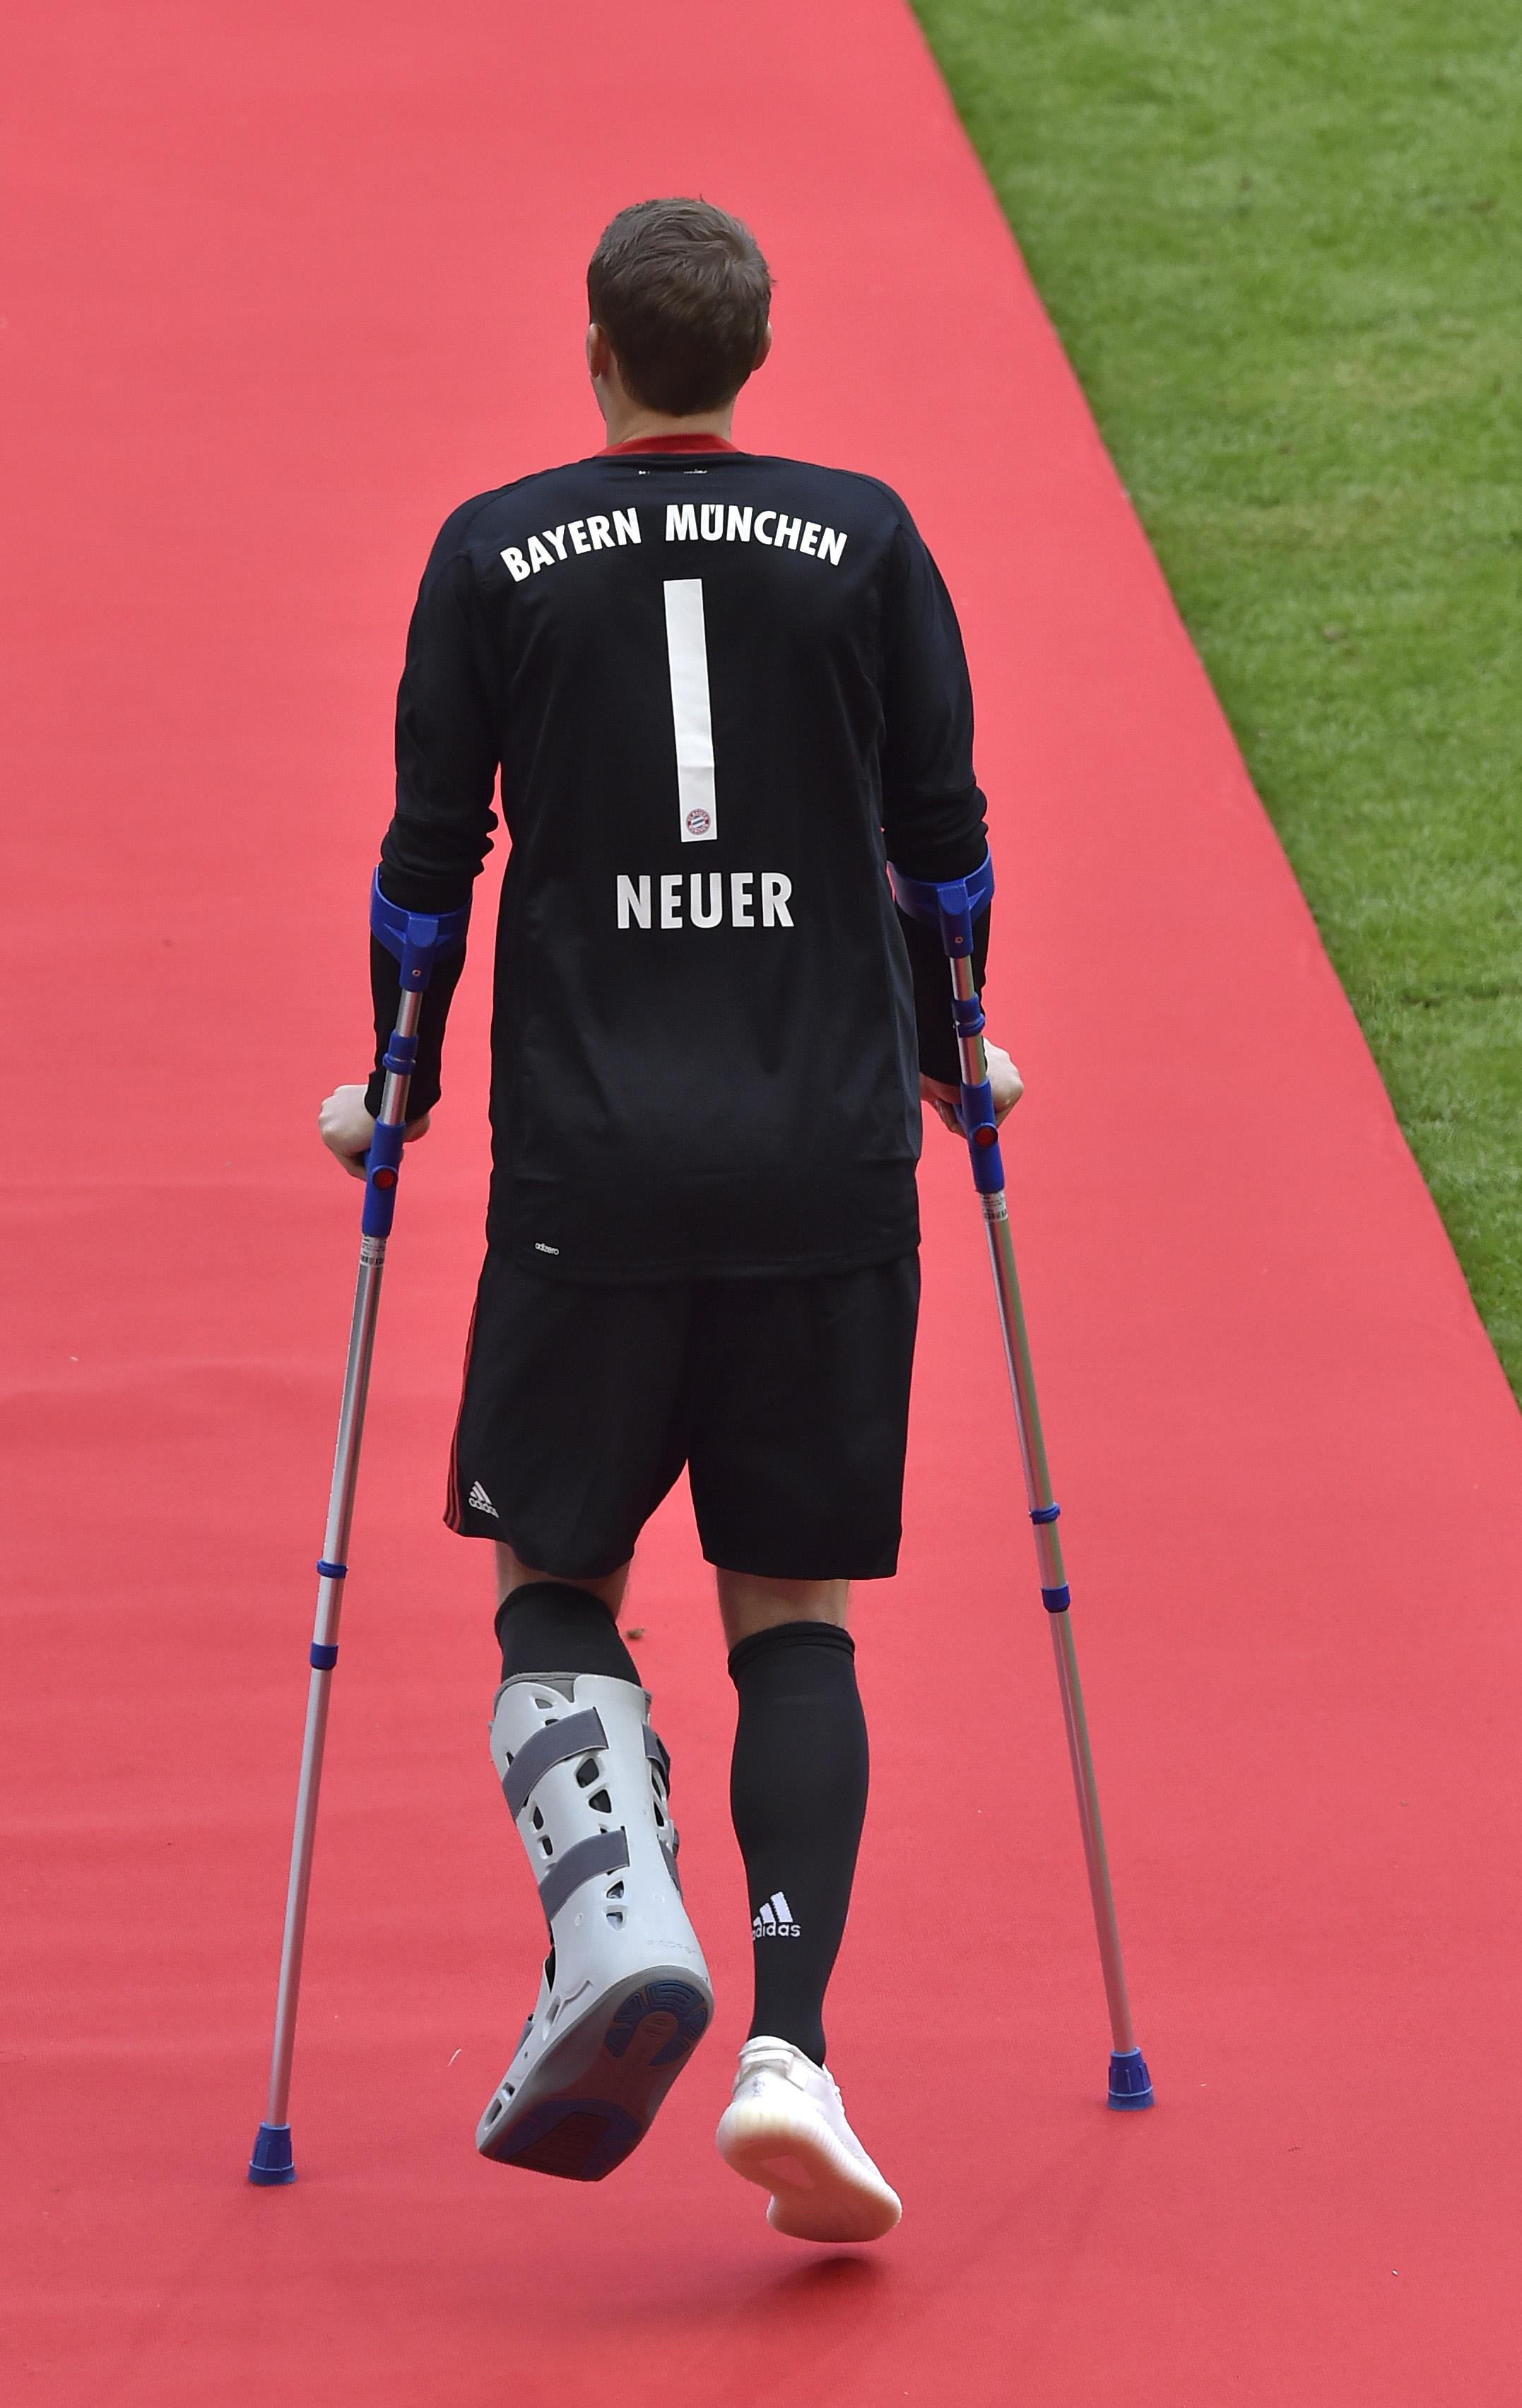 Neuer's foot injury kept him out of the majority of last season